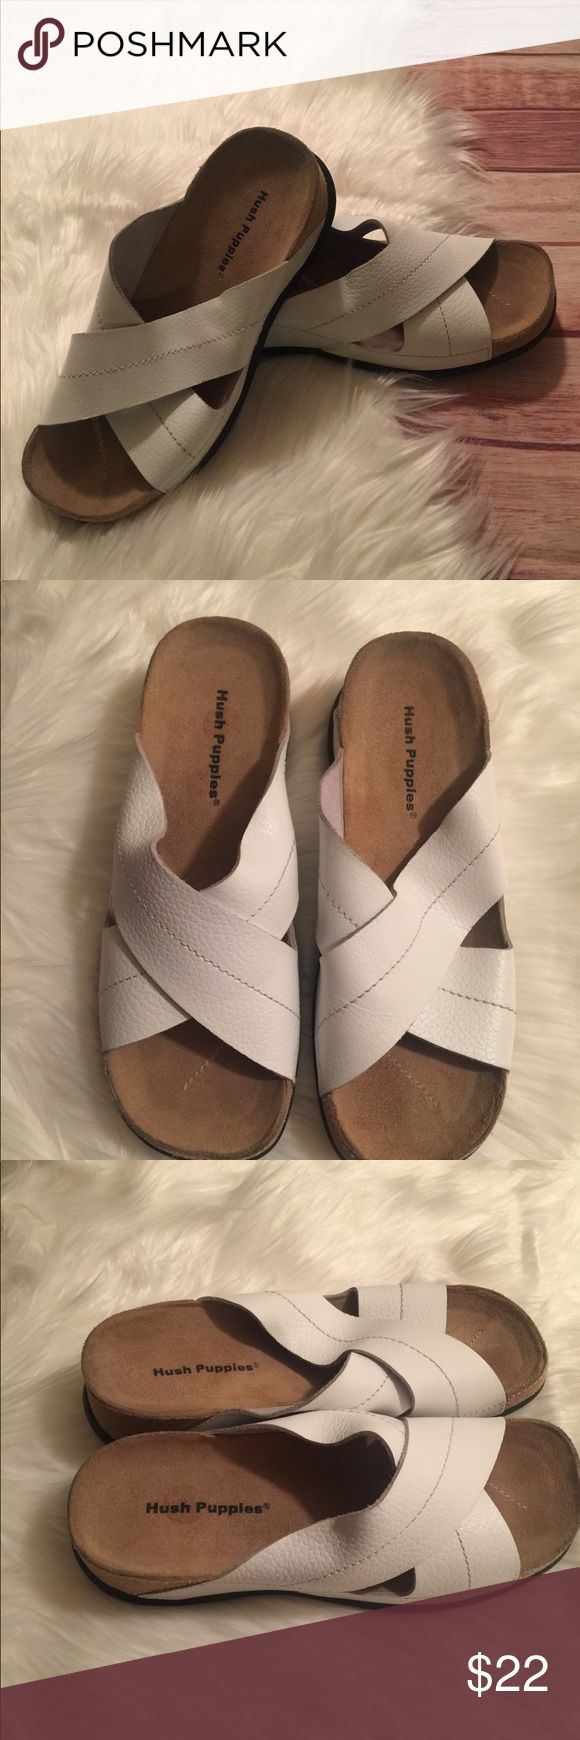 Hush Puppies White Crisscross Sandal Slides Size 7 Hush Puppies White Crisscross Sandal Slides Size 7 Good condition on inside has some faint pink lines see pictures Hush Puppies Shoes Sandals